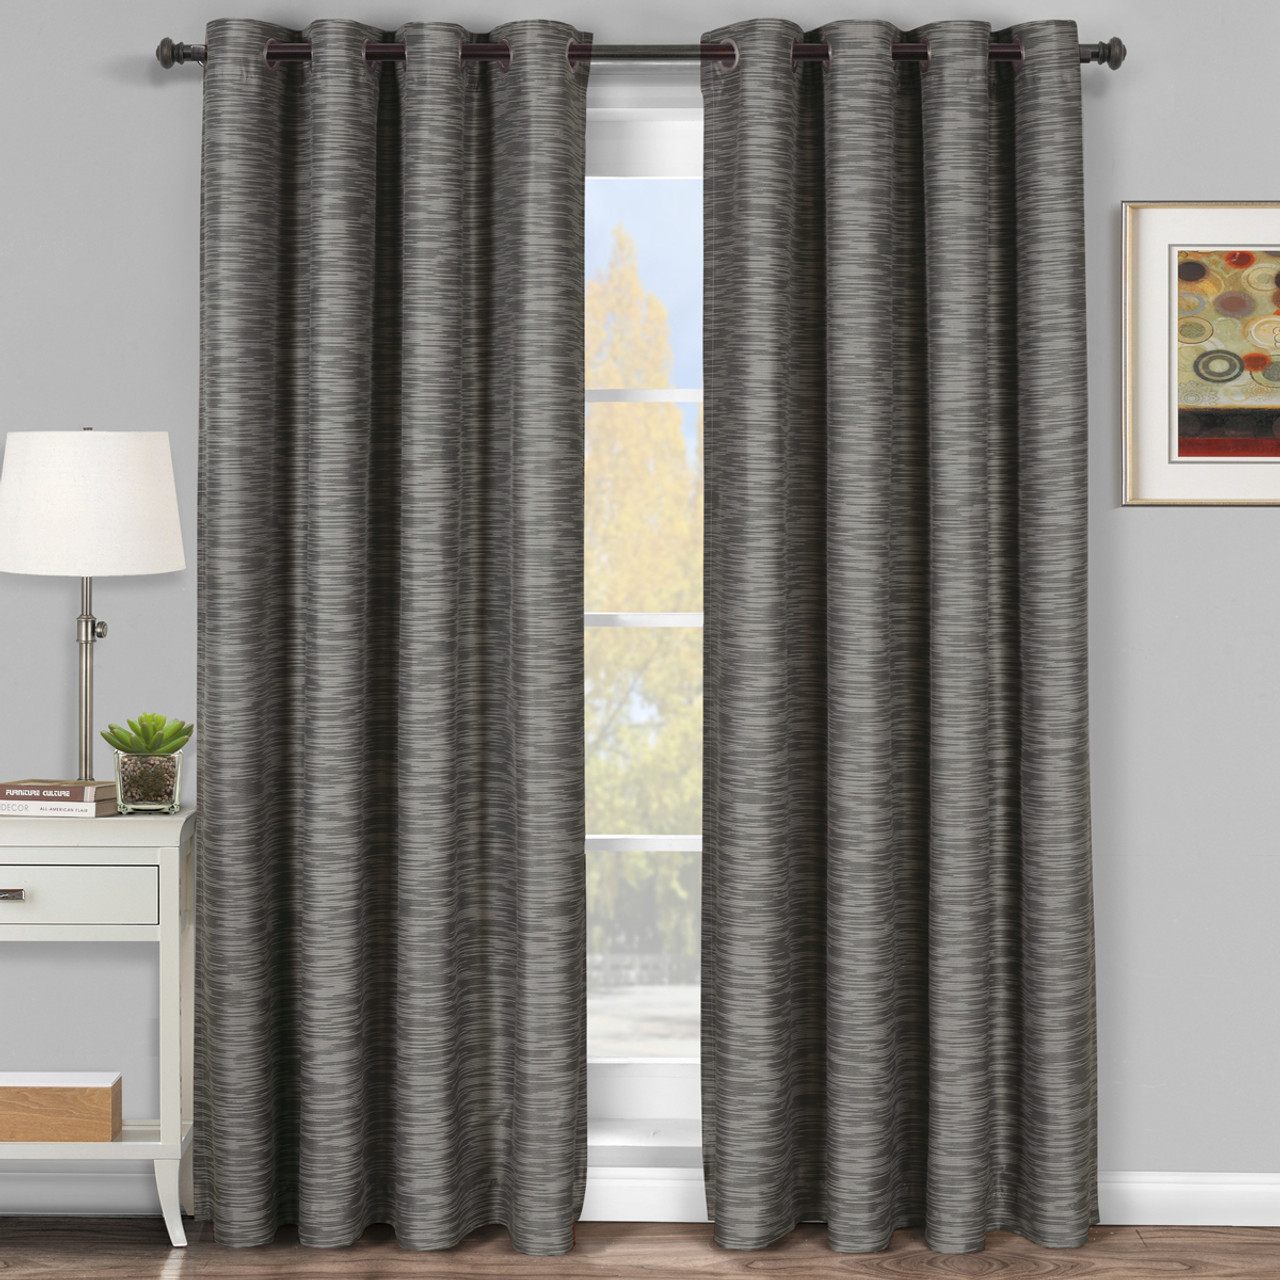 ideas best gray curtain checkoffice grey dark curtains on pics pertaining panels bedroom of briliant to